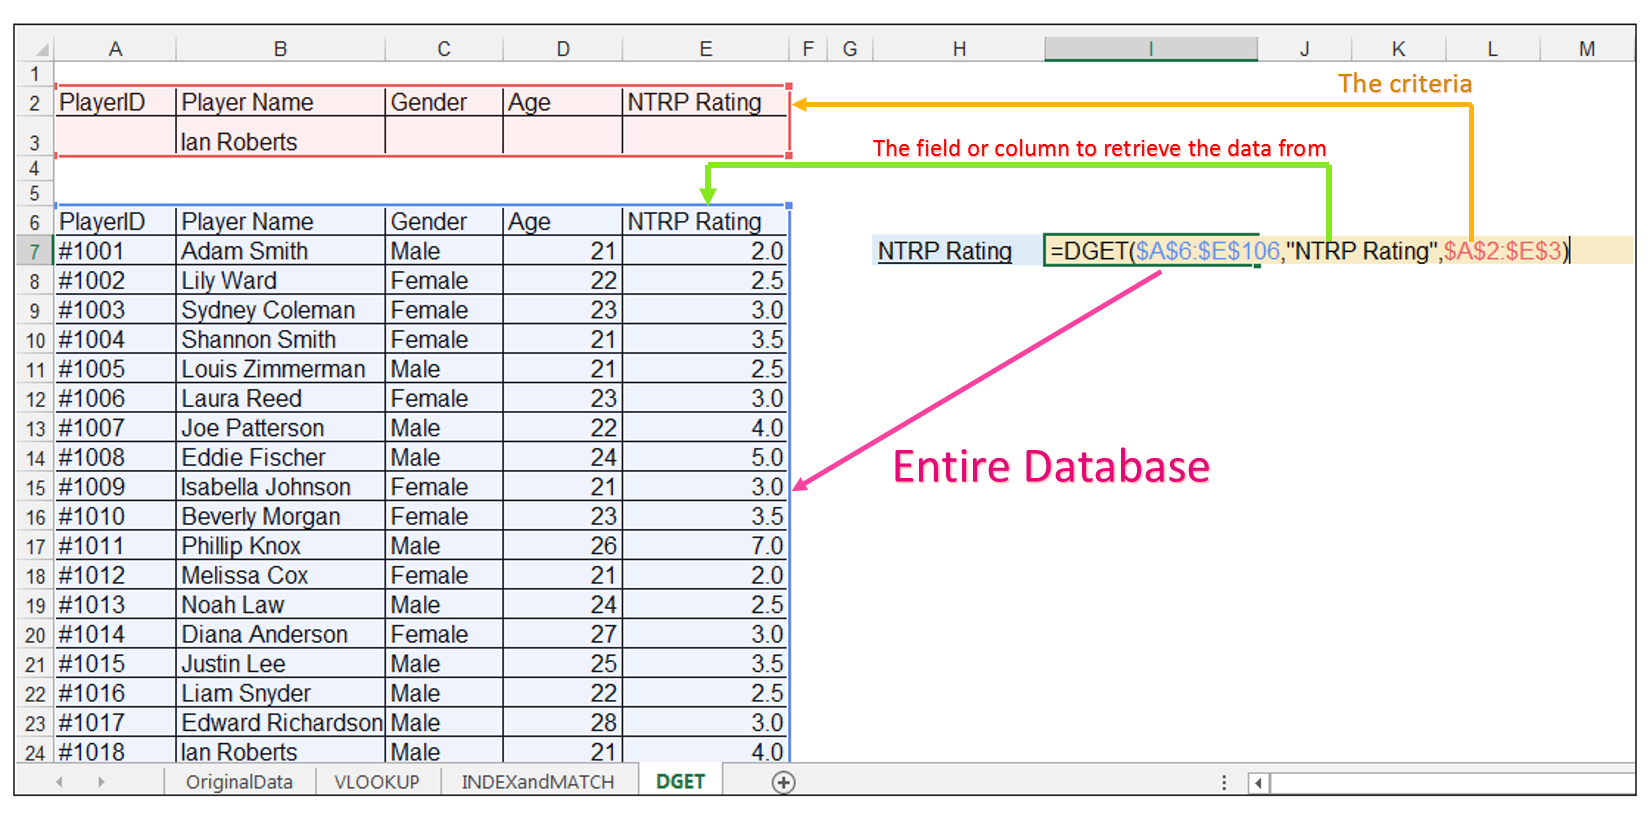 DGET Function Excel Image 2